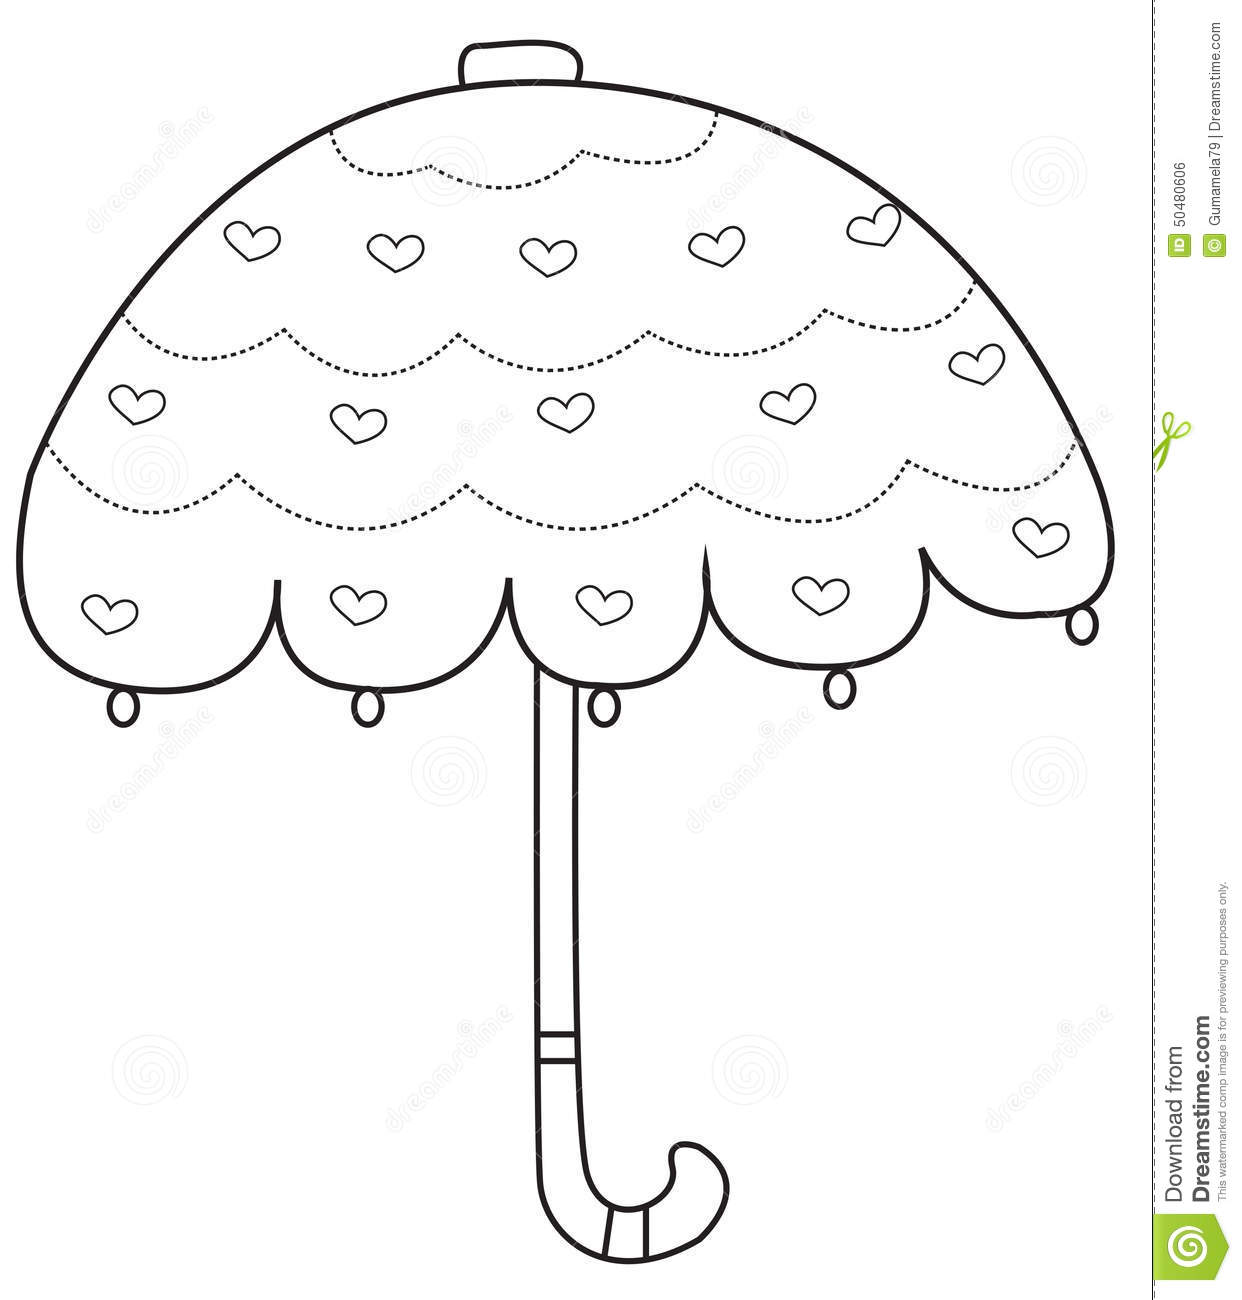 Umbrella Coloring Page Stock Illustration Illustration Of Abstract